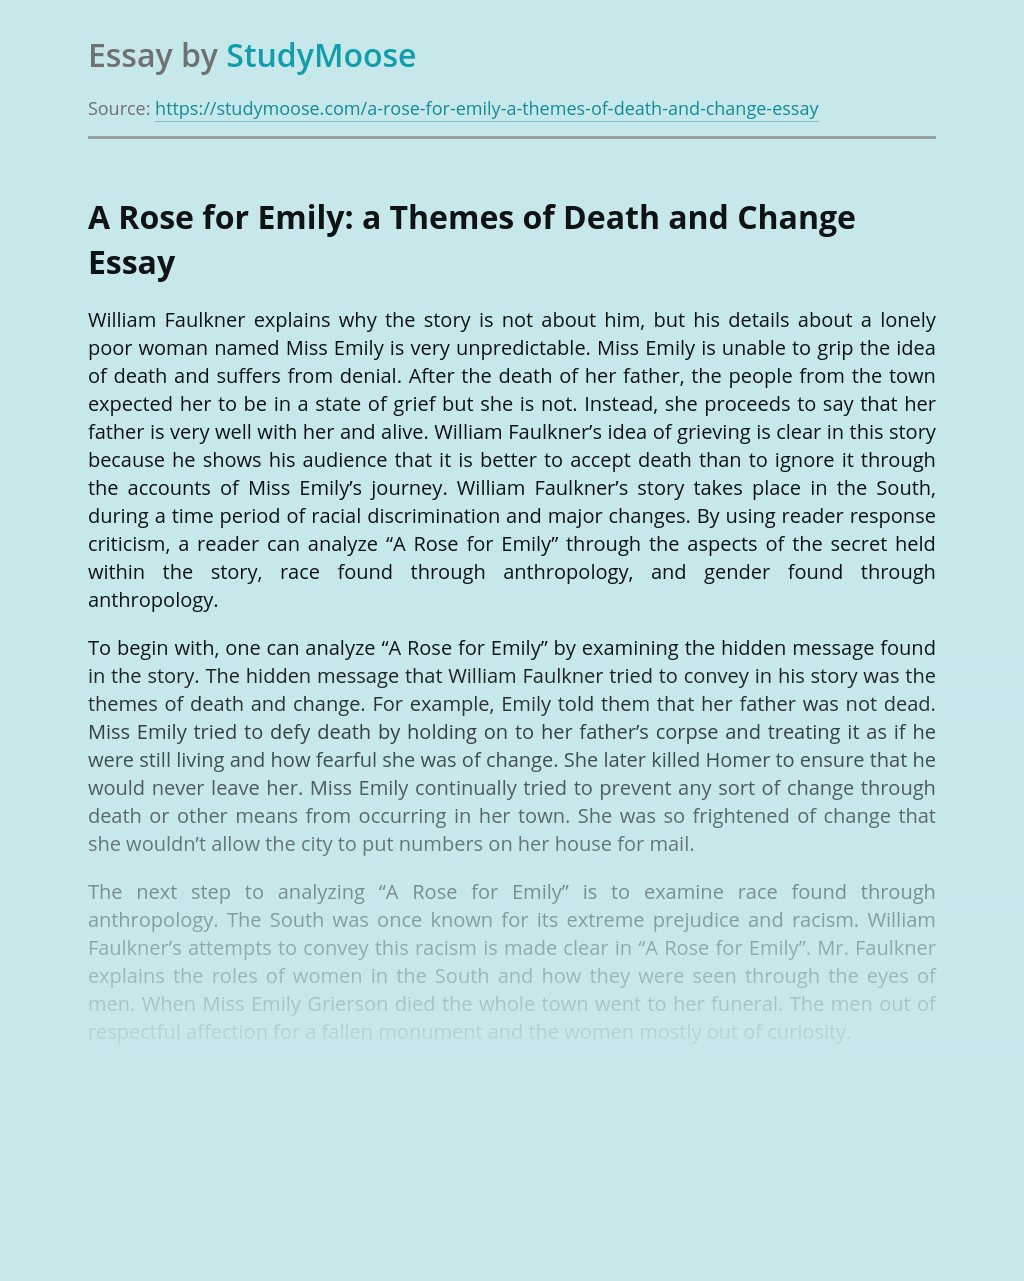 A Rose for Emily: a Themes of Death and Change